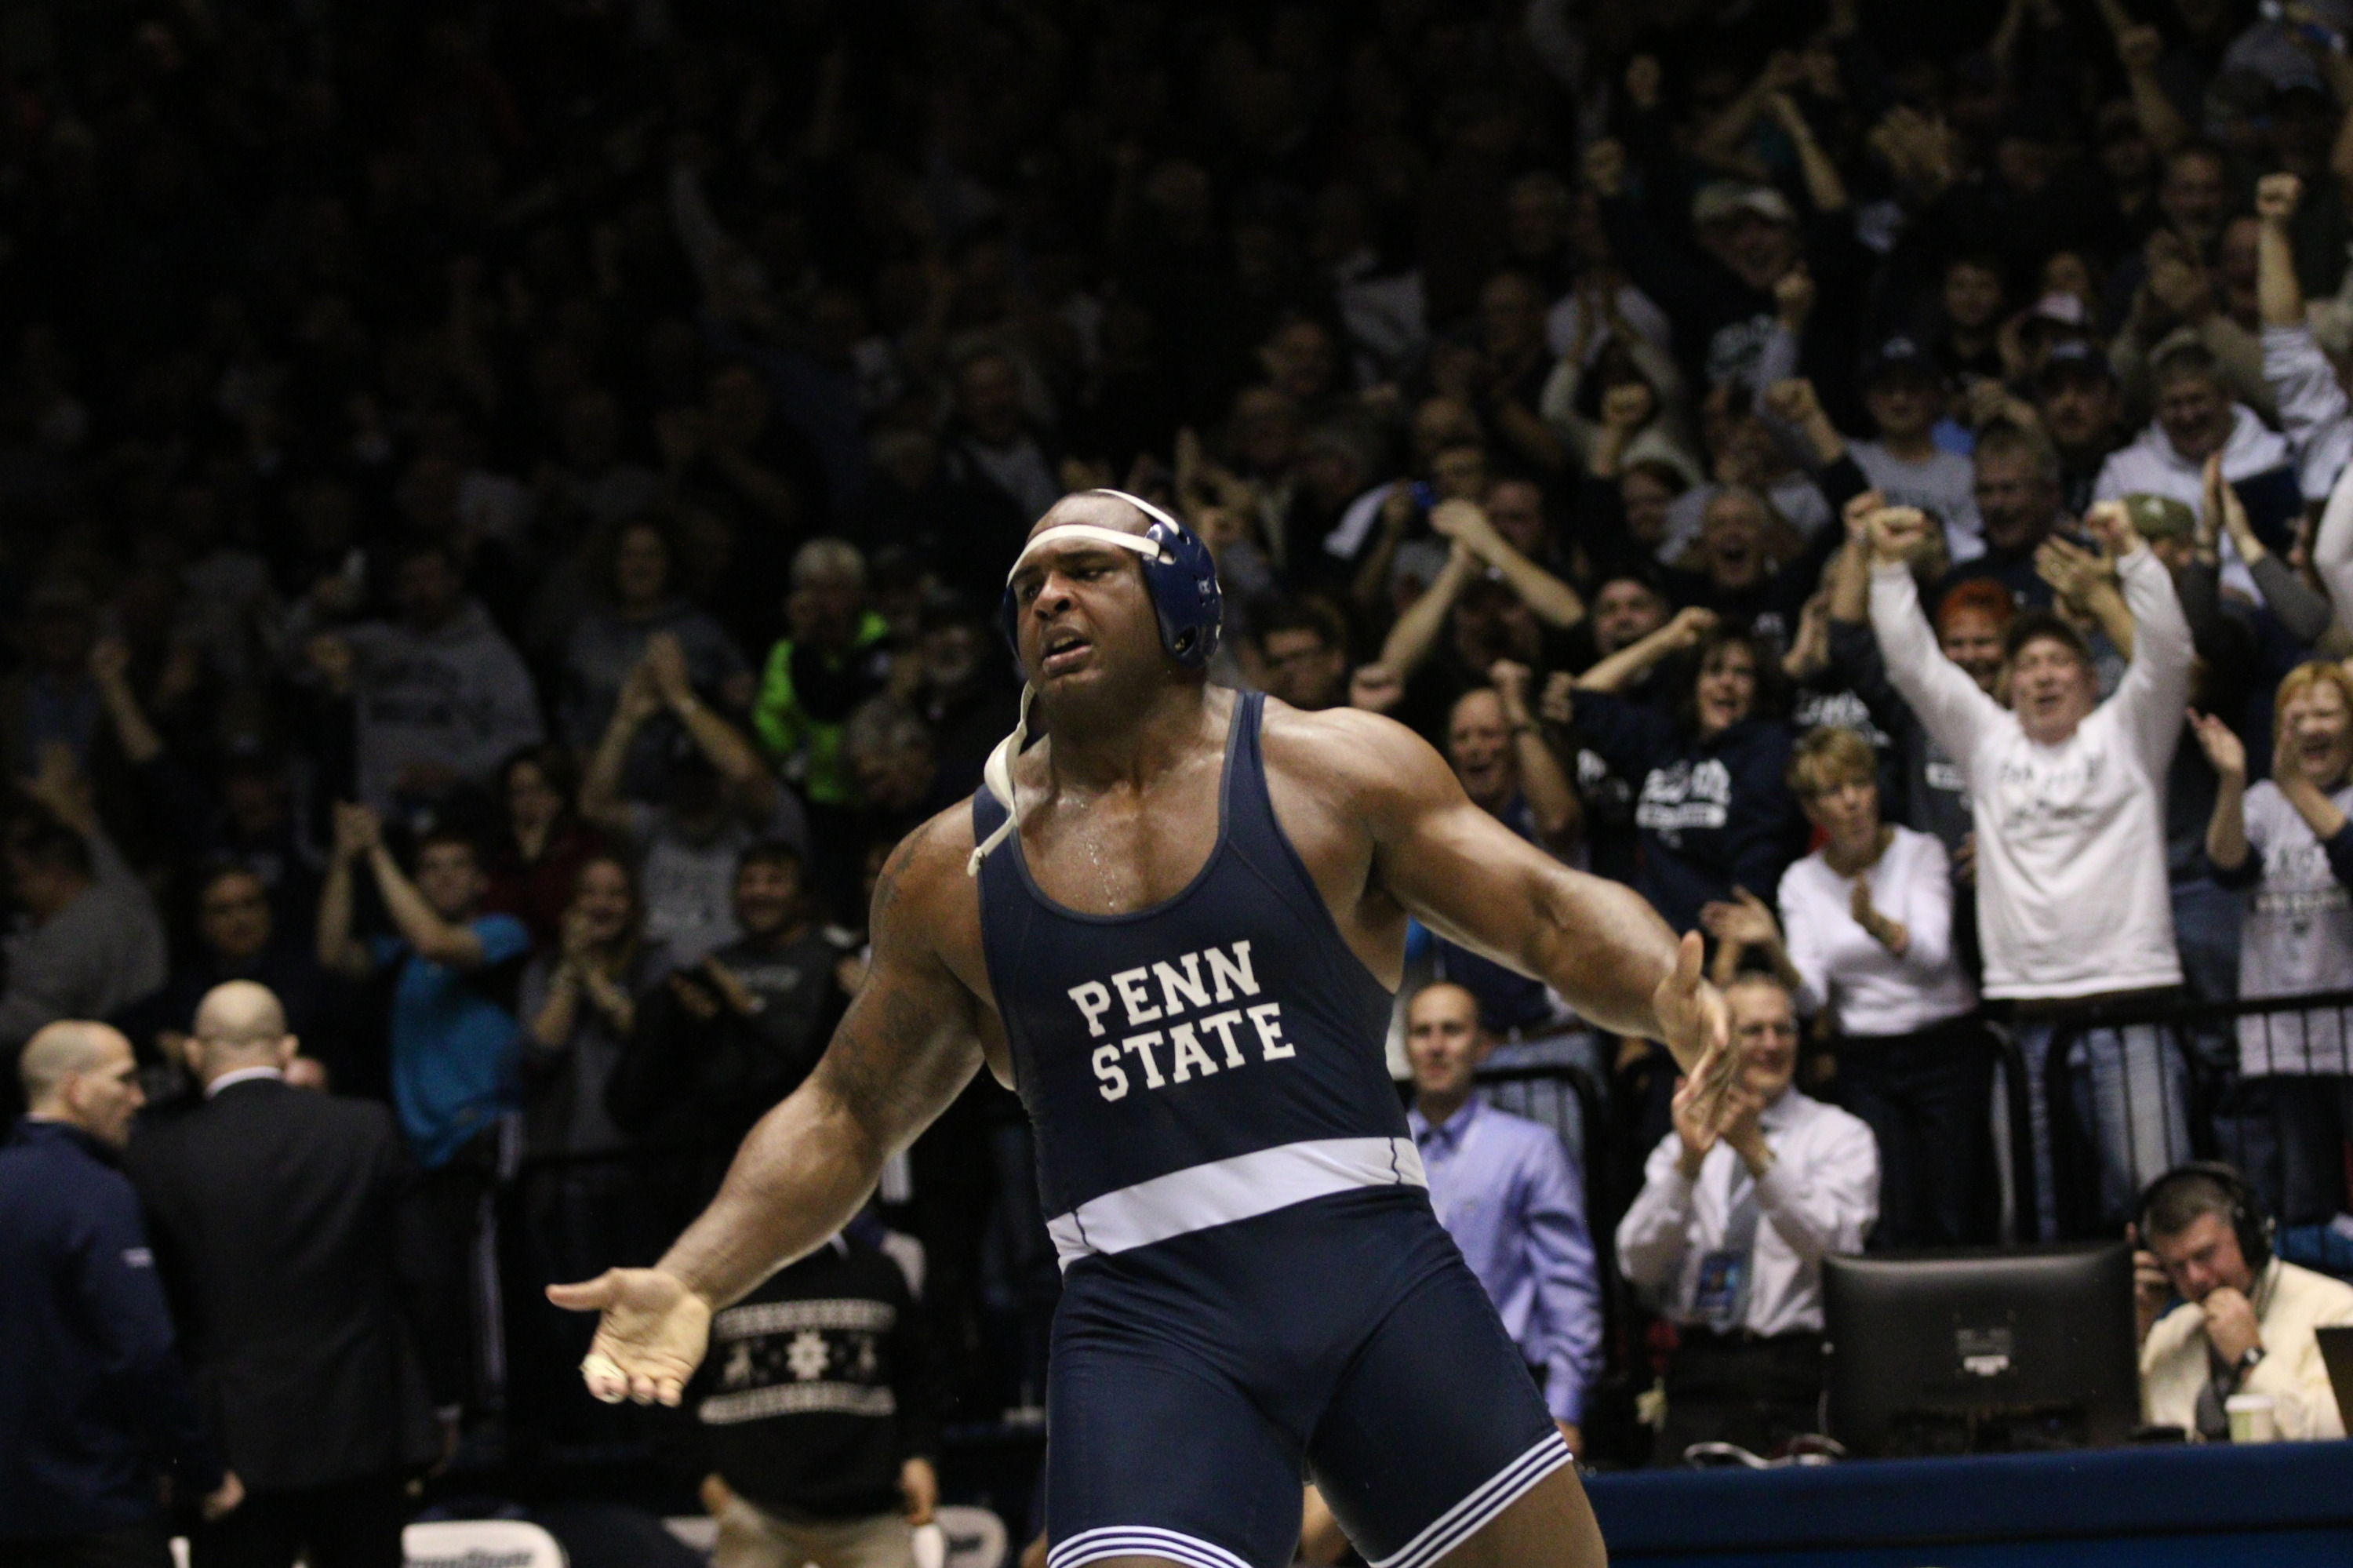 aeef7bc6f26 Senior Jimmy Lawson celebrates after his dual clinching 5-3 (sv) win over